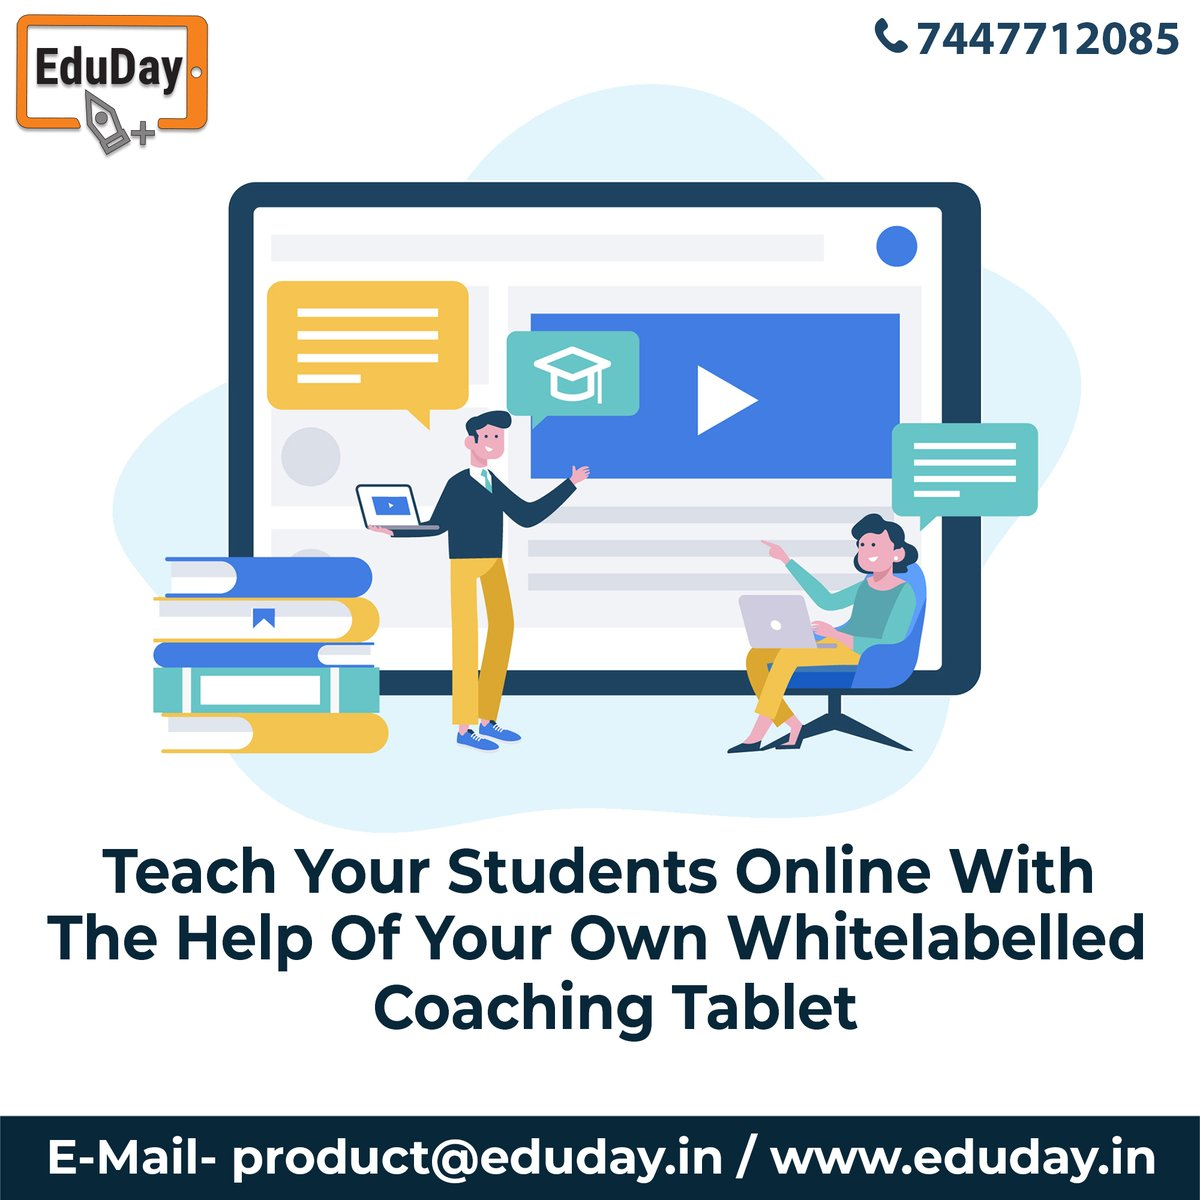 Transform Teaching, Inspire Learning and Deliver a world-class Student Experience.  Get in touch to know more:- Phone : +91 7447712085 E-Mail: product@eduday.in visit:- http://www.eduday.in   #eduday #edudayindia #pune #india #tab #tablets #CoachingInstitute #Coachingclassesspic.twitter.com/70D7wr5vw8